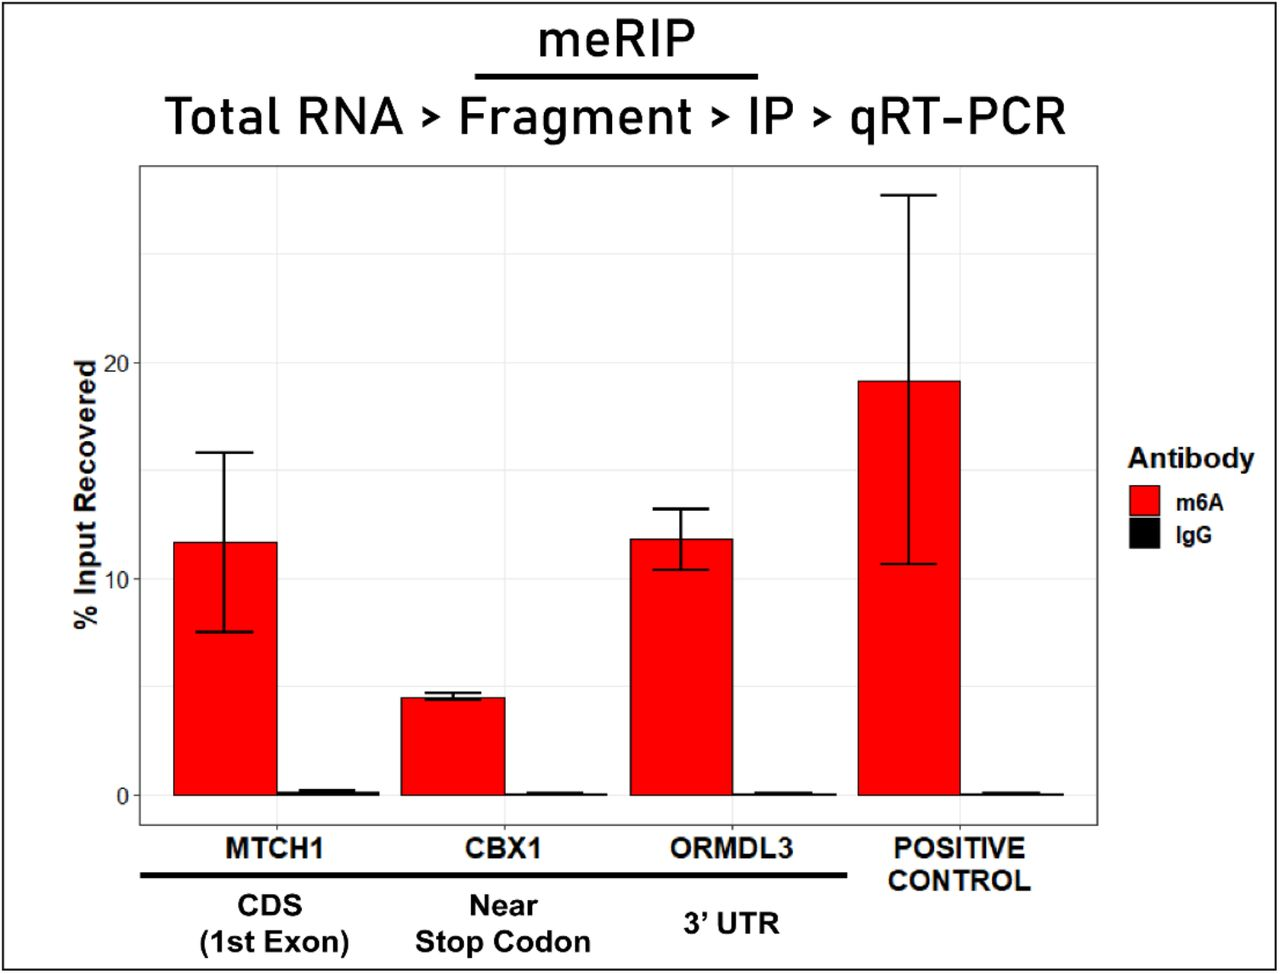 Experimental validation of select m 6 A residues. RNA immunoprecipitation using anti-m 6 A antibody (meRIP) followed by RT-qPCR was used (protocol outlined in top flowchart) to confirm the presence of m 6 A within the transcripts. Residues were chosen based on their location within the gene in order to gauge the ability of our method to identify m 6 A sites over a diverse profile of positions. Enrichment is measured as the percent of input recovered from the immunoprecipitation with anti-m 6 A compared to amount of input recovered using anti-IgG control. 'Positive Control' is a known m 6 A site within the EEF1A1 gene.